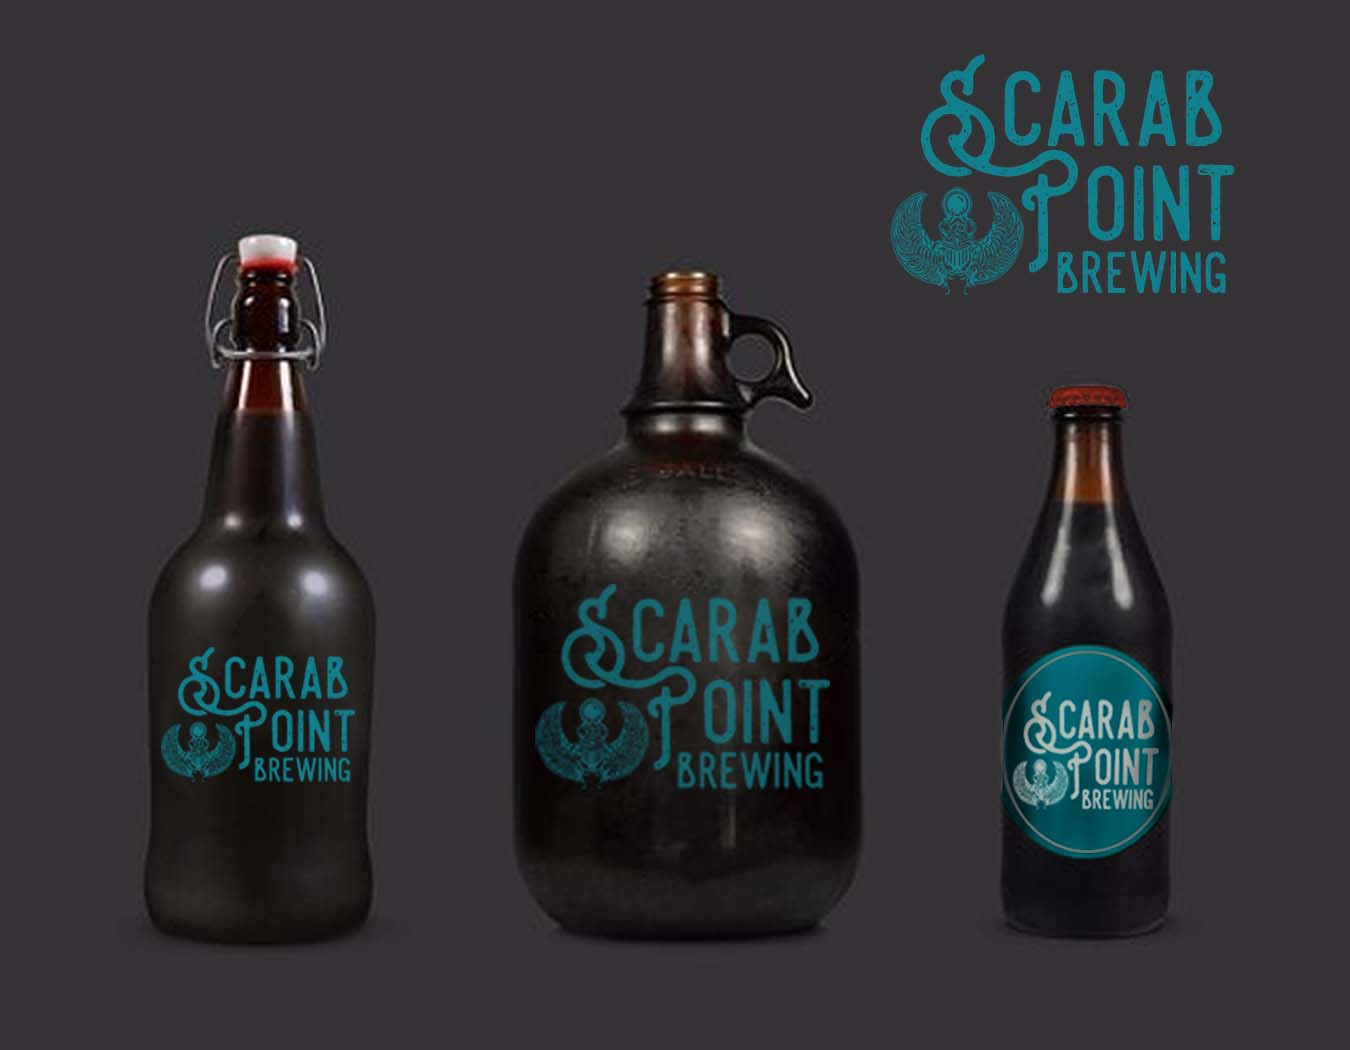 Carrboro Creative Graphic Design Scarab Point Brewing